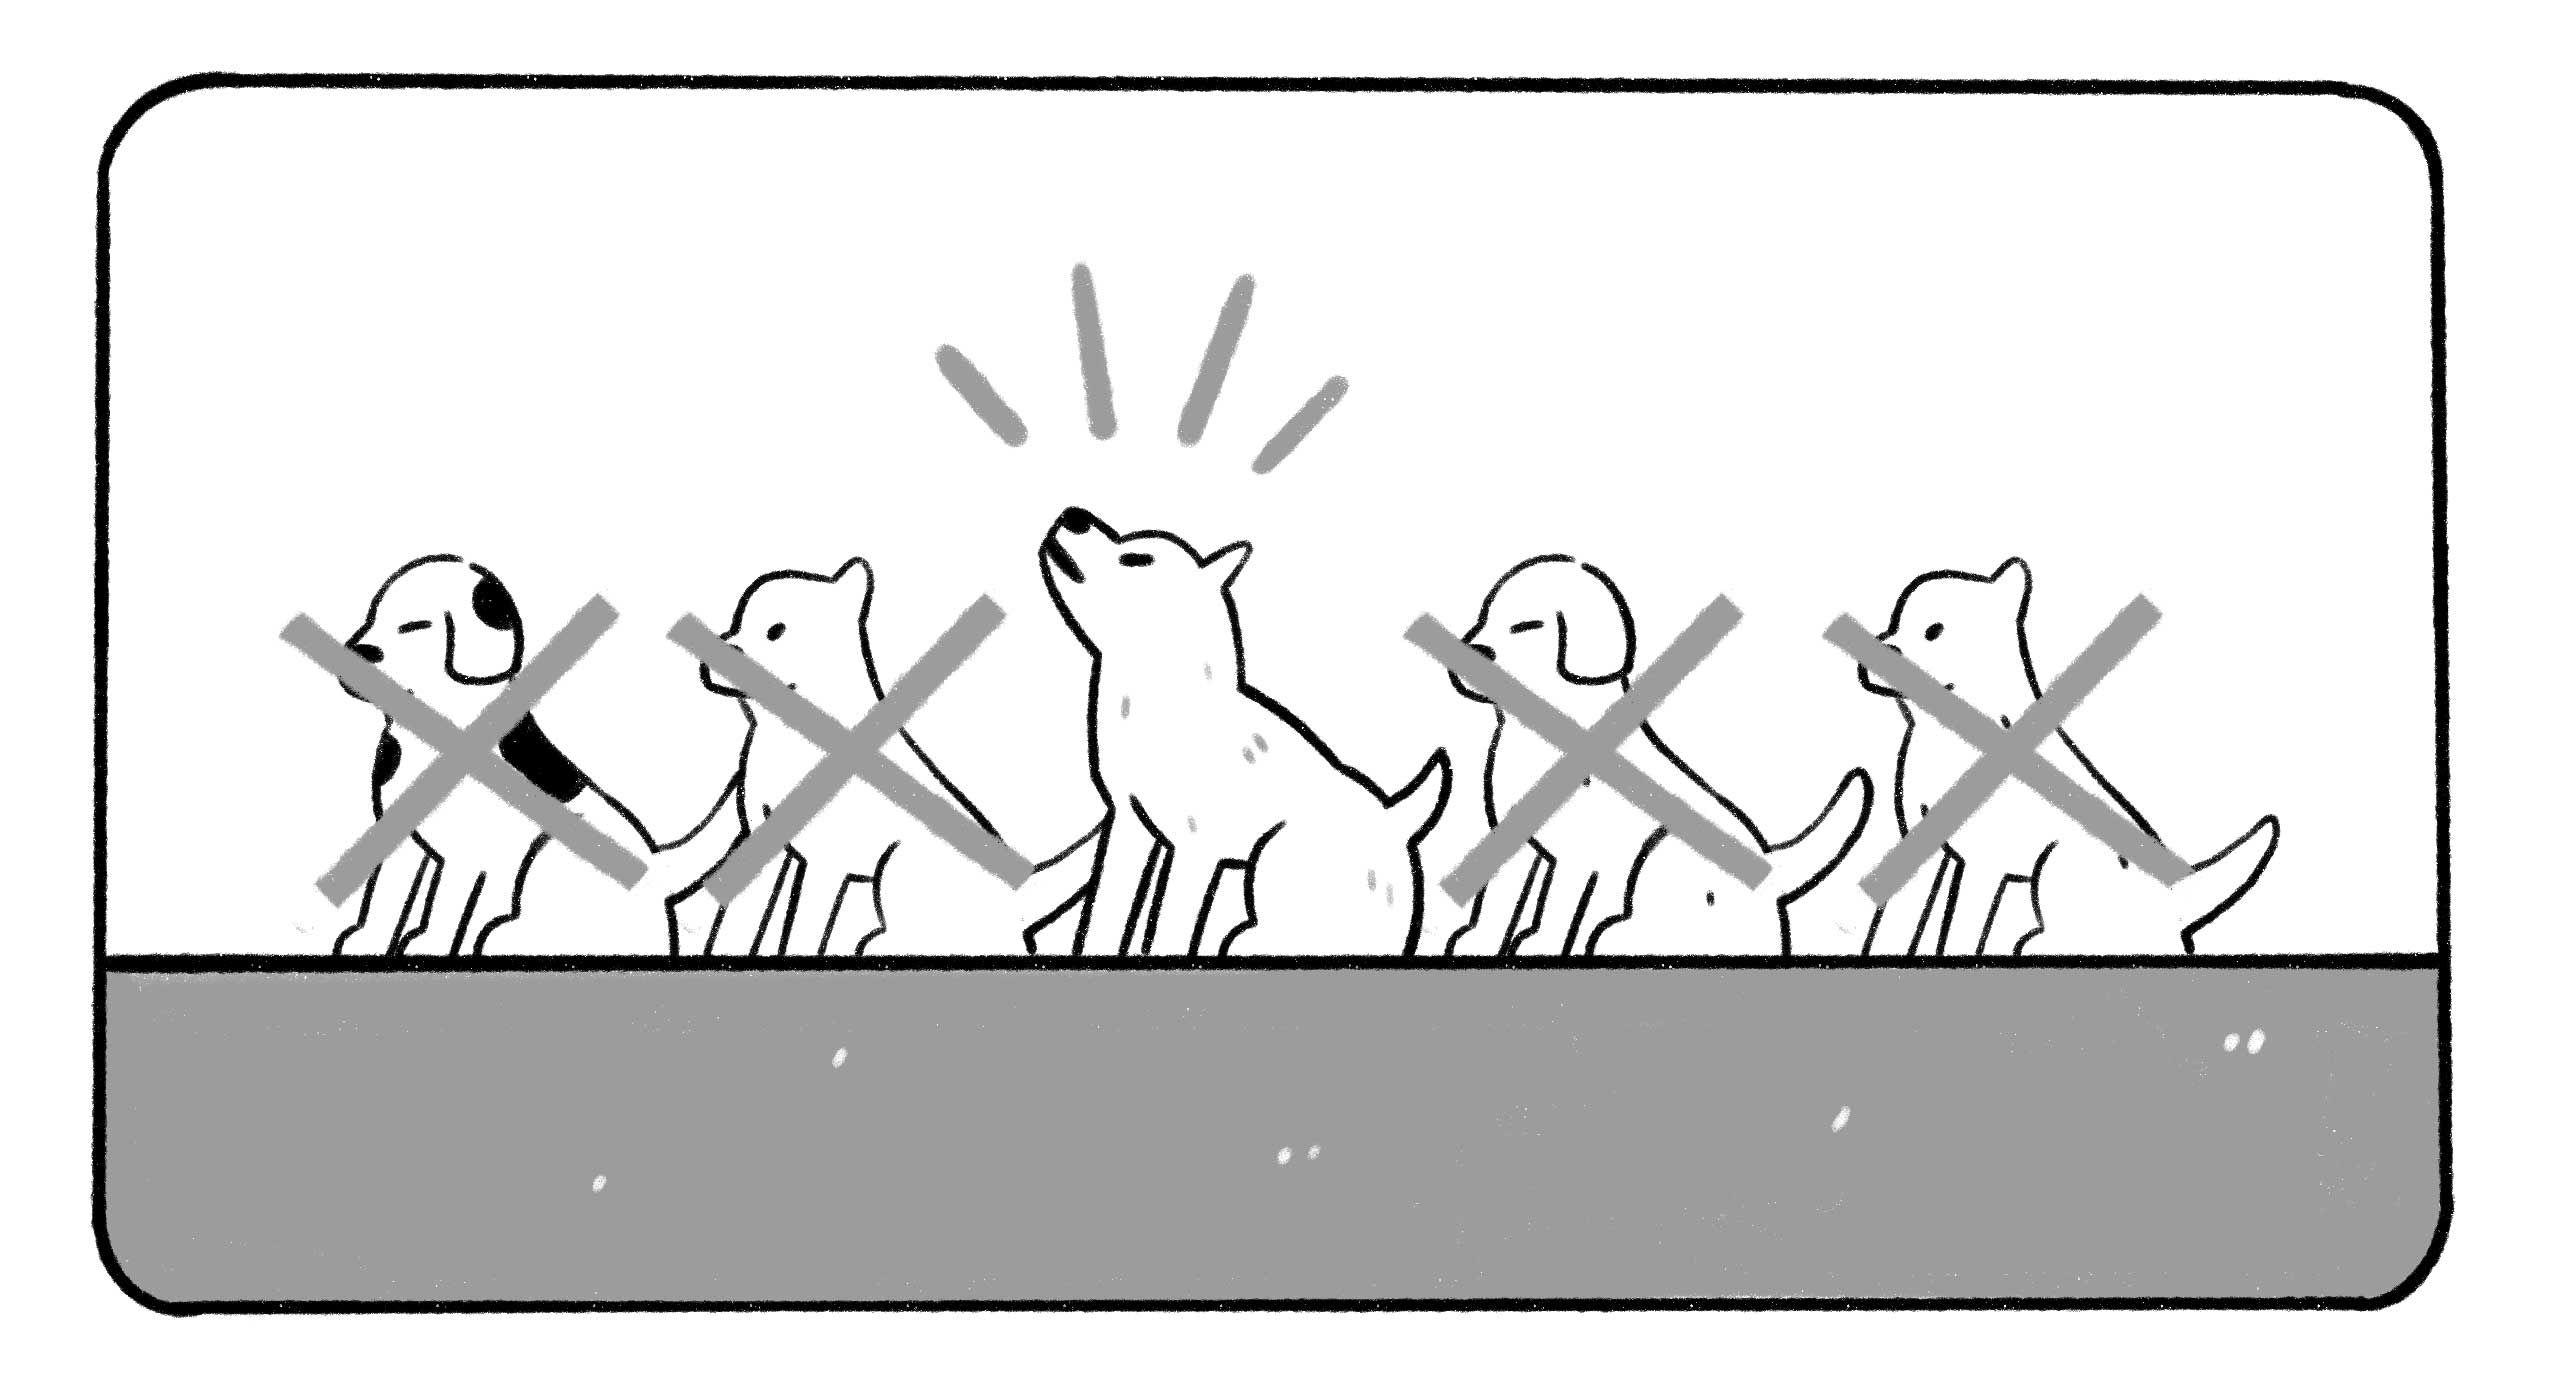 dogs in a line up, one is singled out and barking